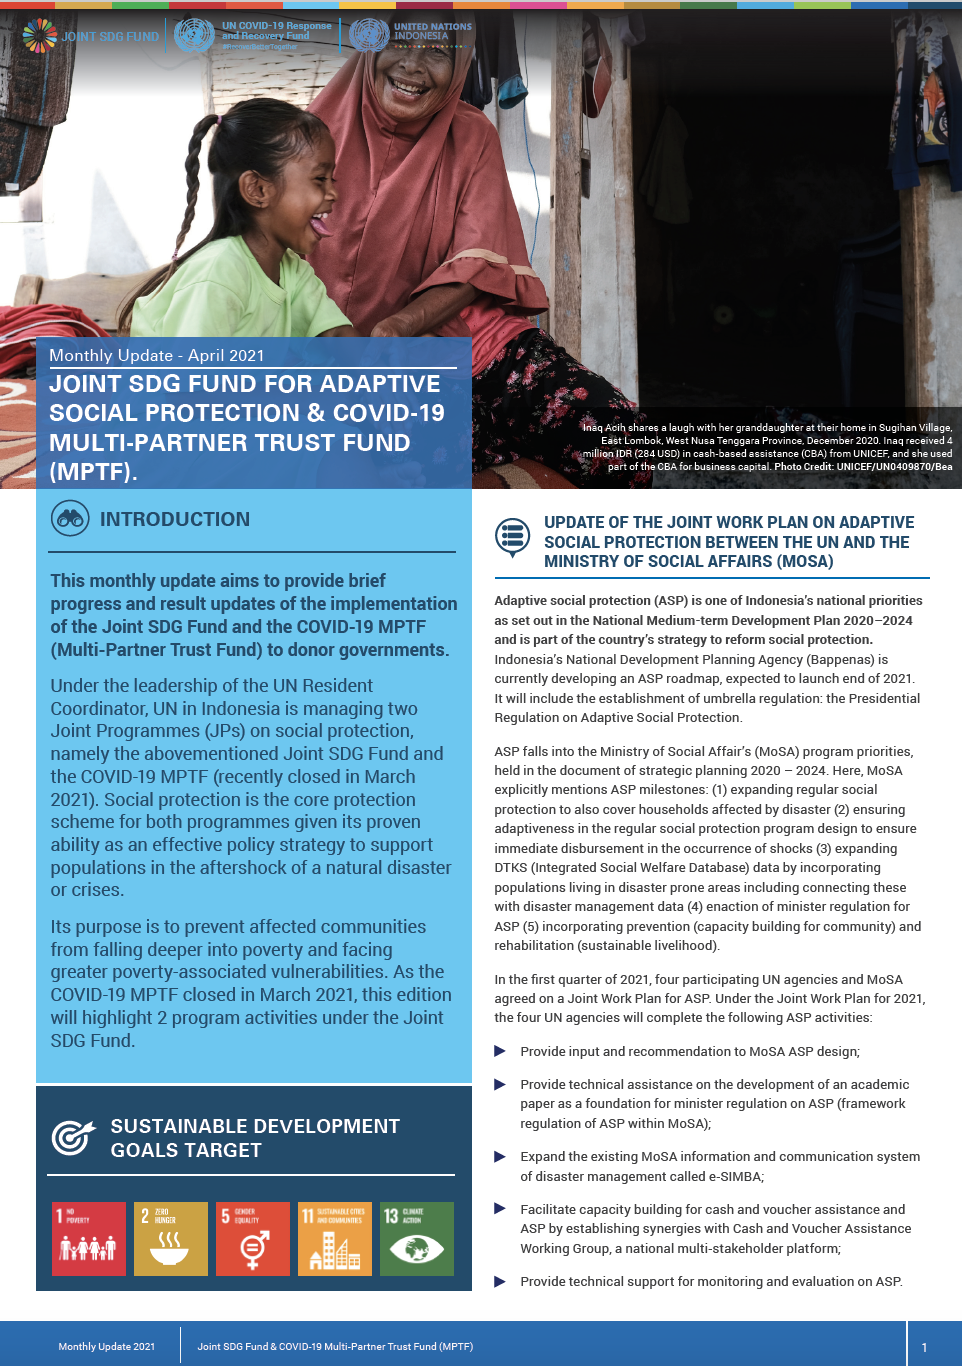 Newsletter Joint SDG Fund COVID-19 MPTF - April 2021